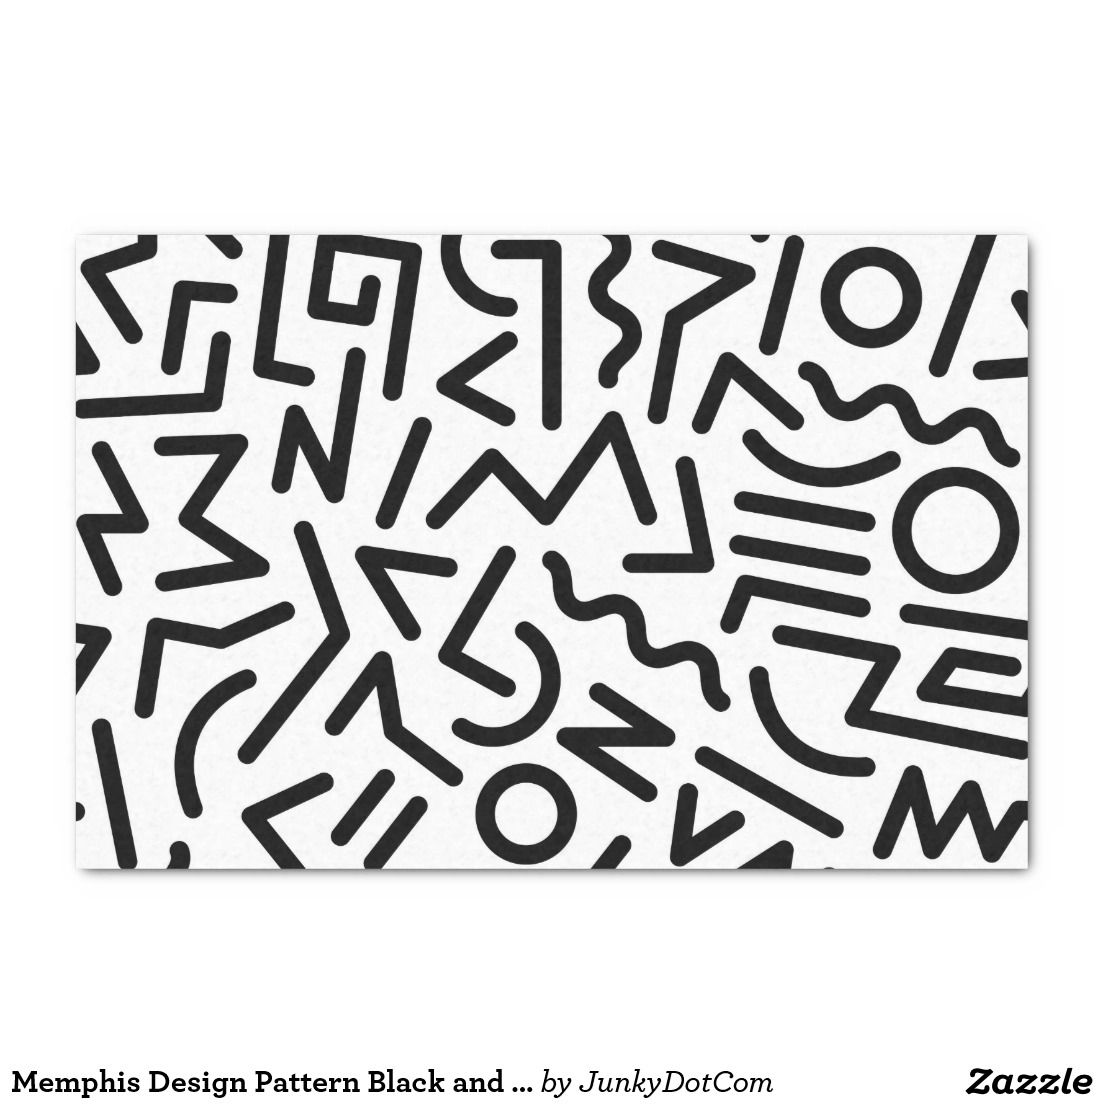 Memphis Design Pattern Black and White Tissue Paper